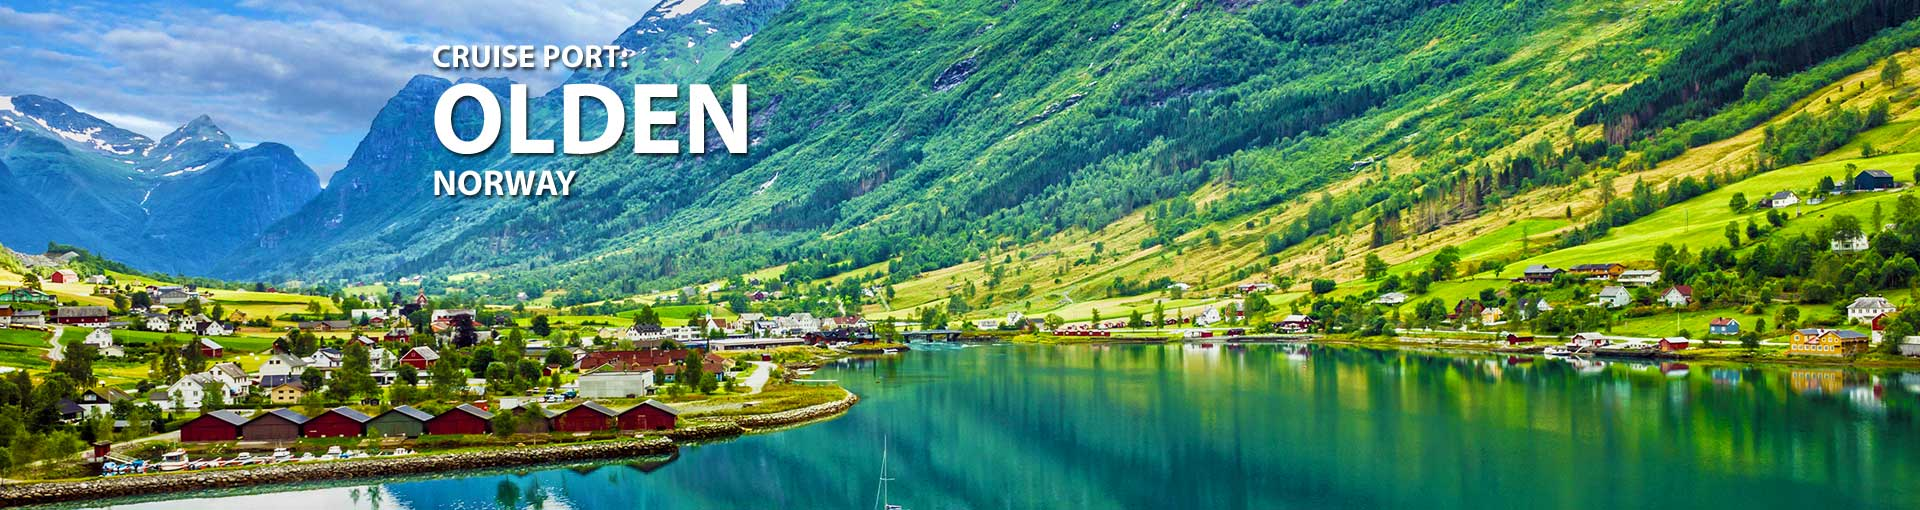 Cruises to Olden, Norway